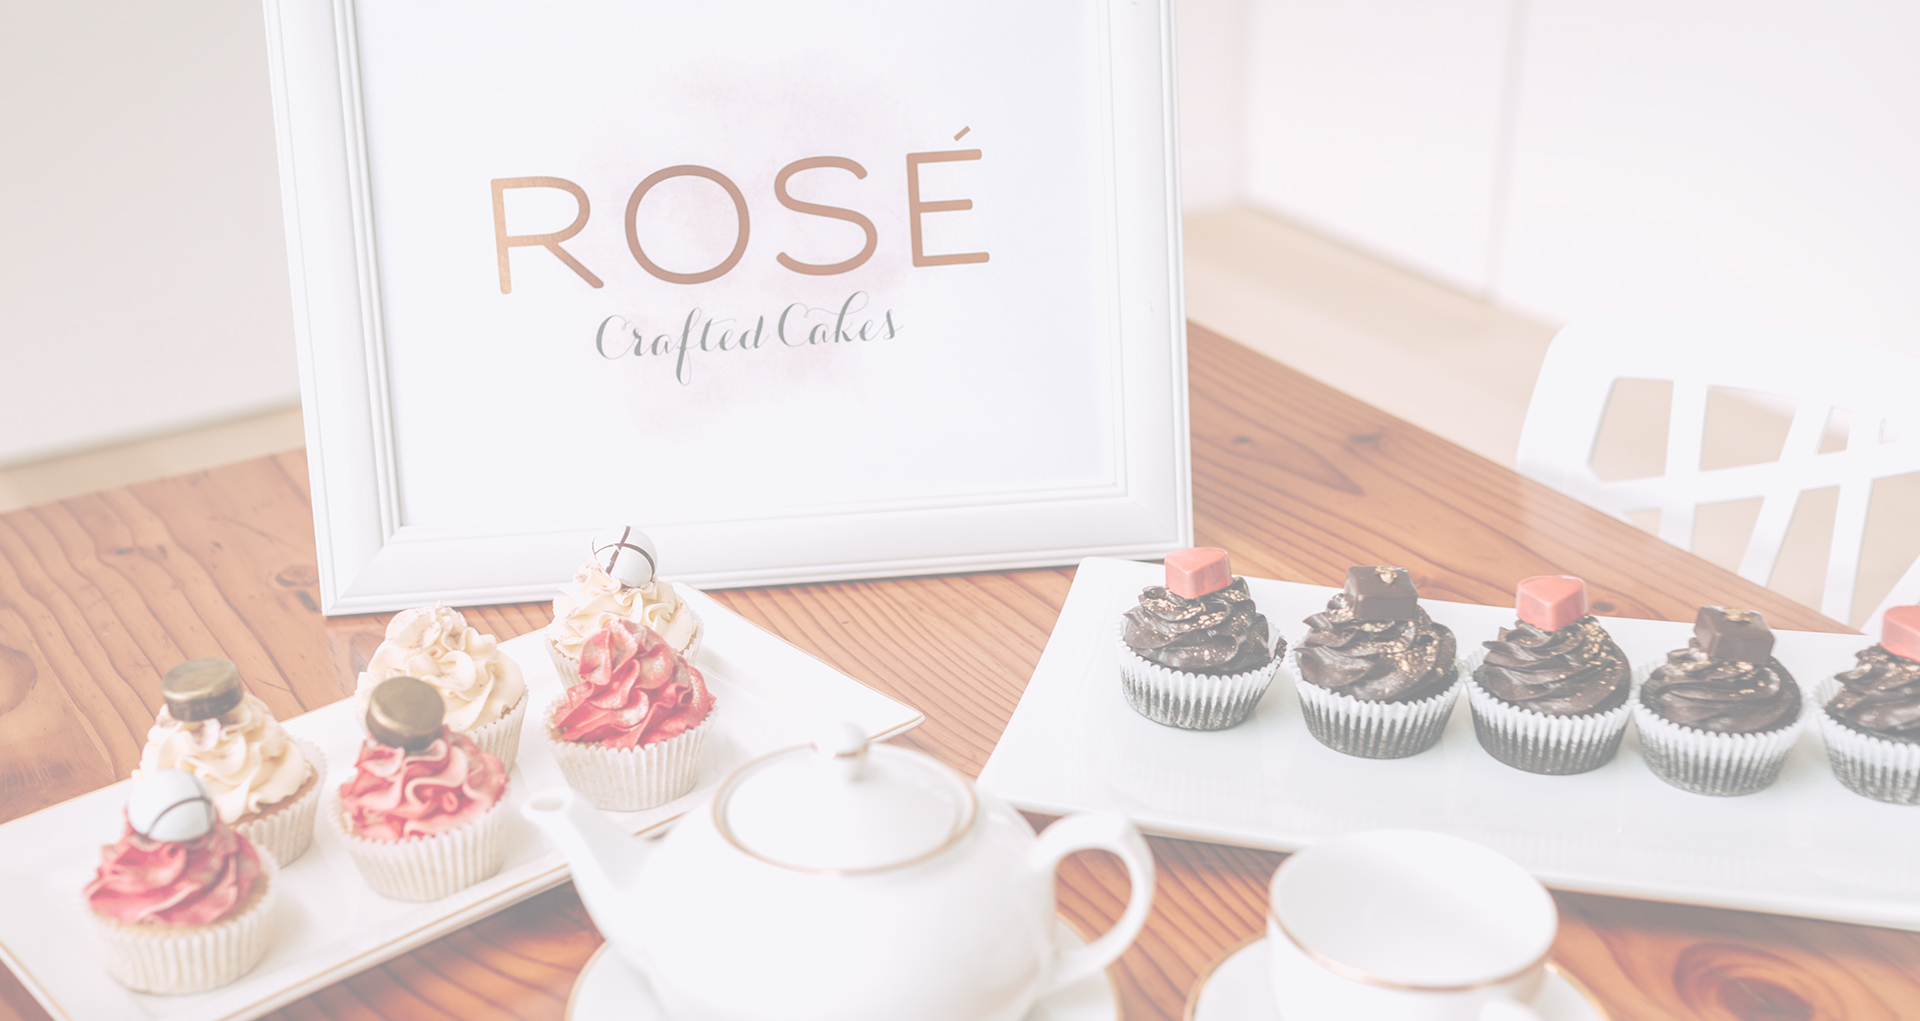 ROSE CRAFTED CAKES TERMS AND CONDITIONS